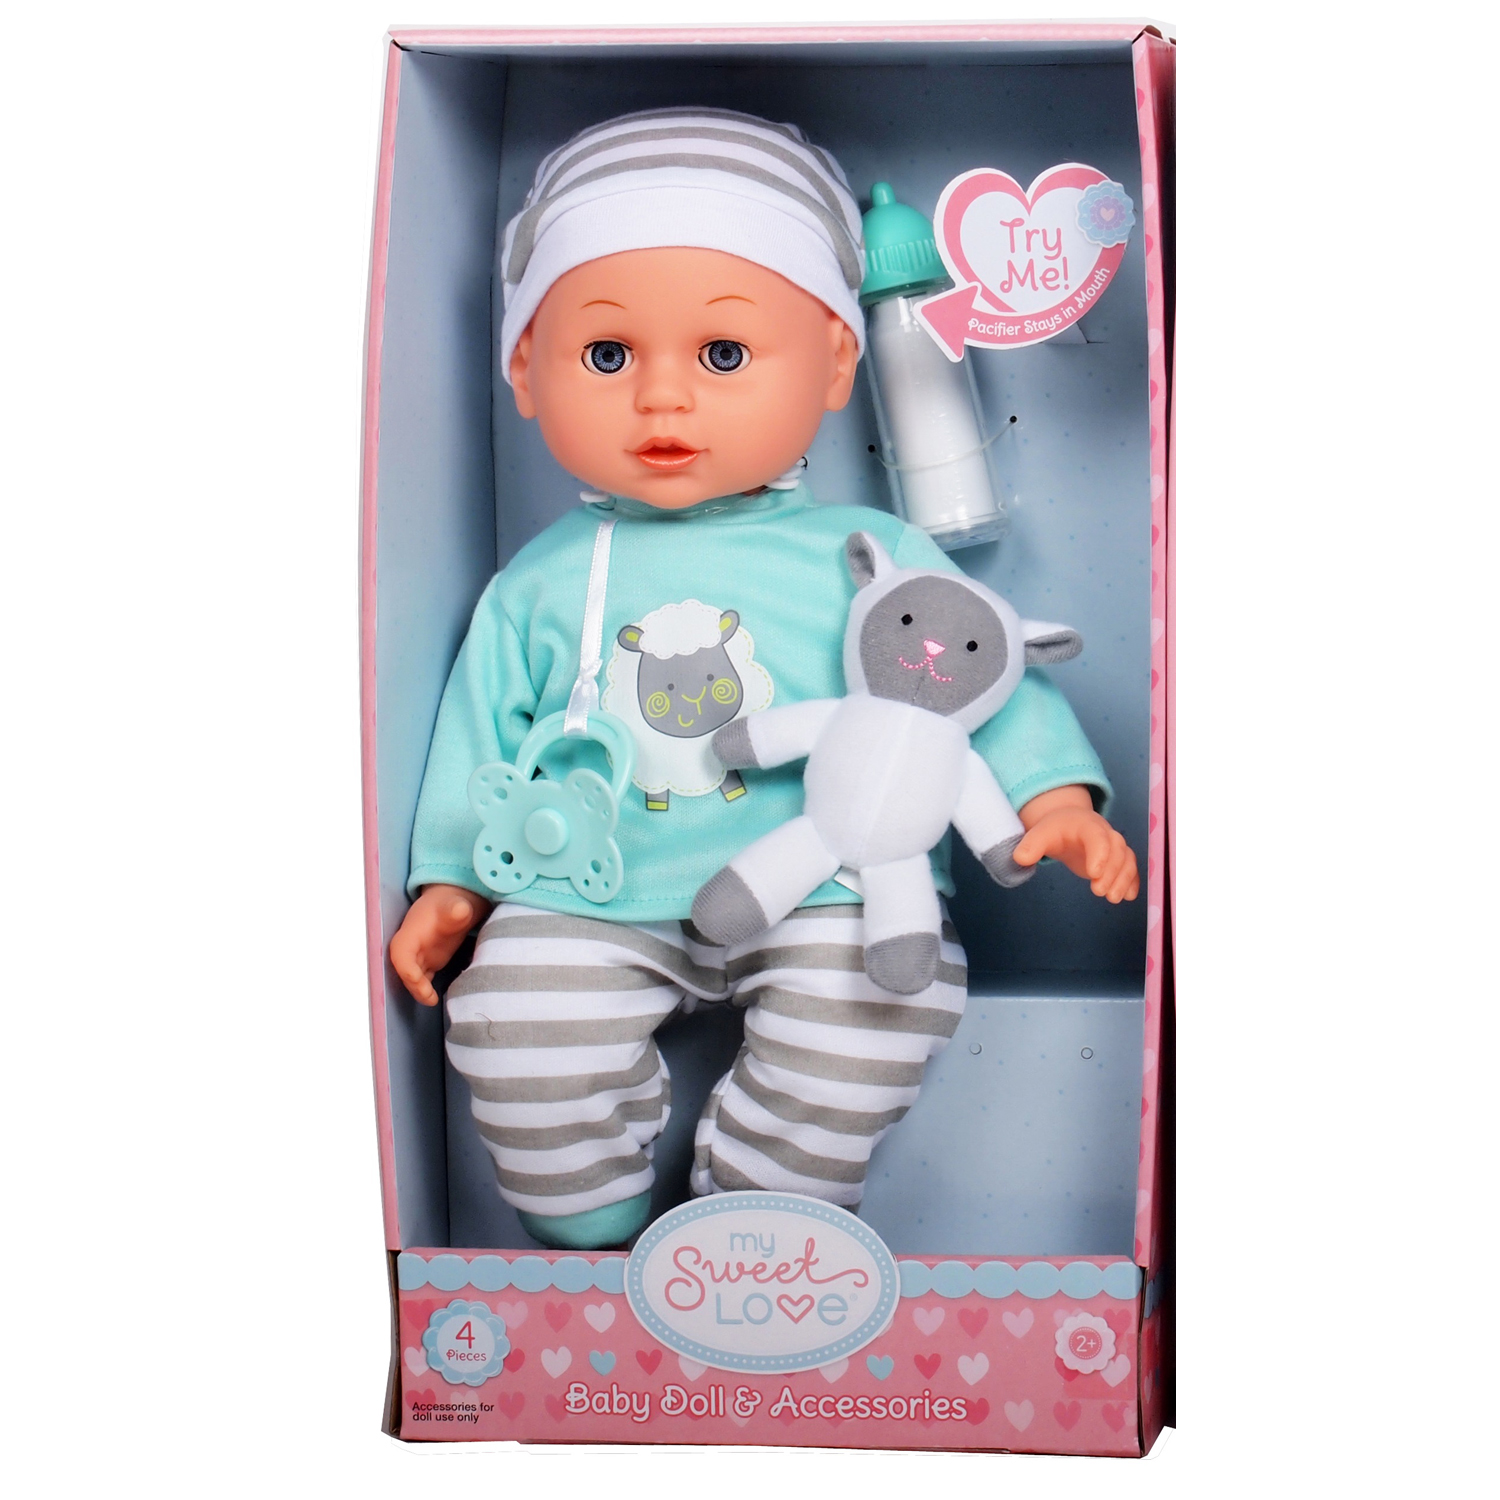 MY SWEET LOVE 14 INCHES BABY MAGGIE DOLL. (2 ASSORTED STYLES)